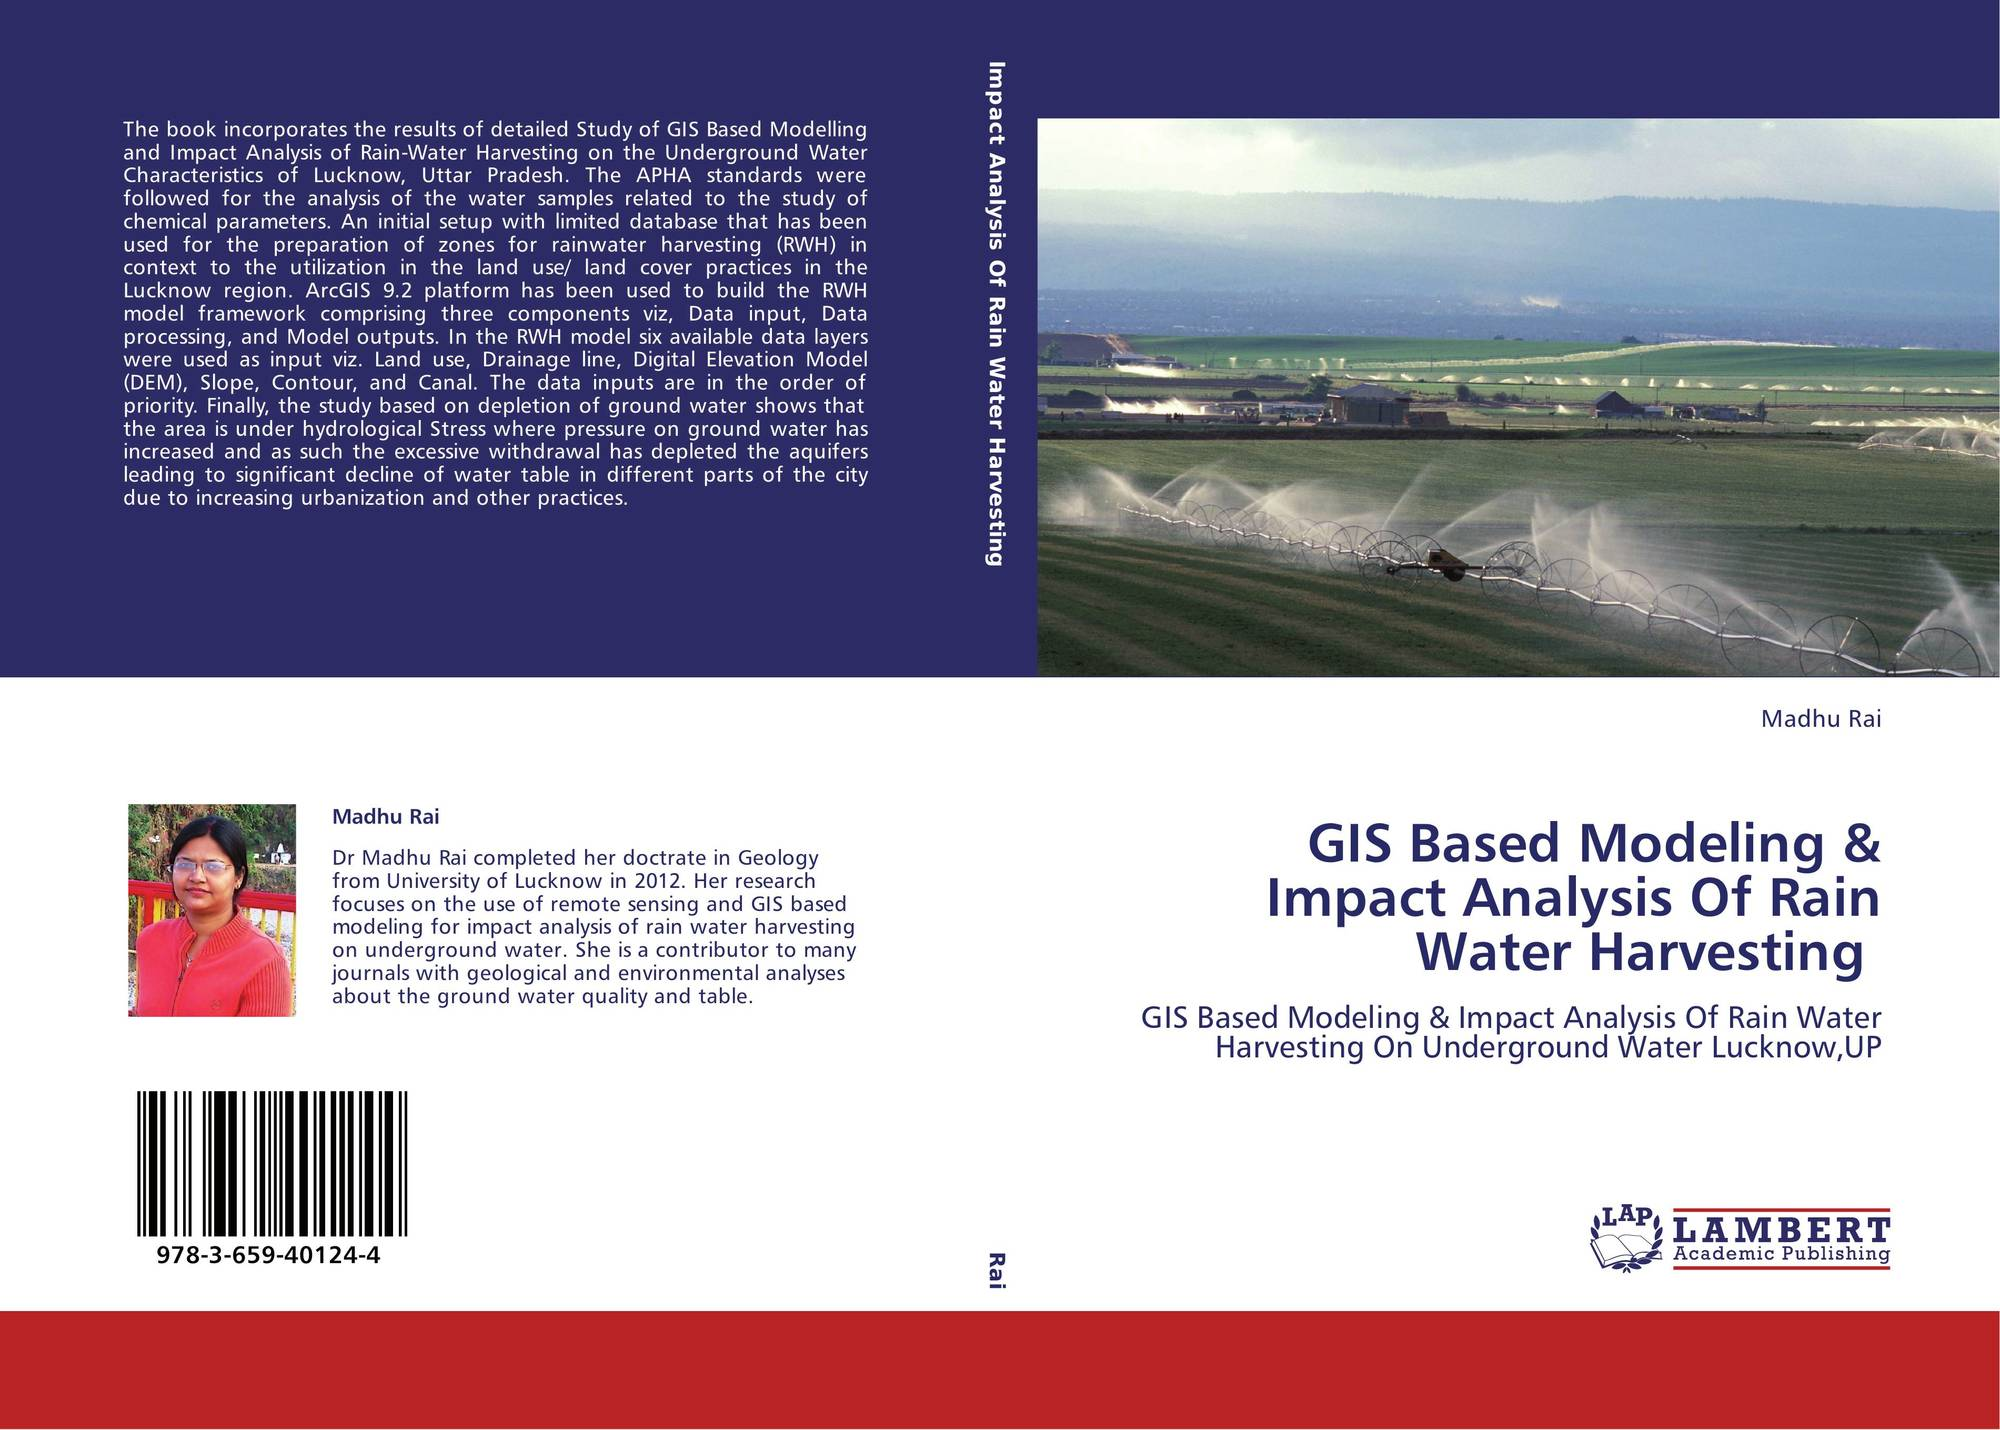 a gis analysis of the impact A gis analysis of the impact of modern practices and polices on the urban heritage of irbid, jordan sharaf al-kheder a,, naif haddad a, leen fakhoury b.